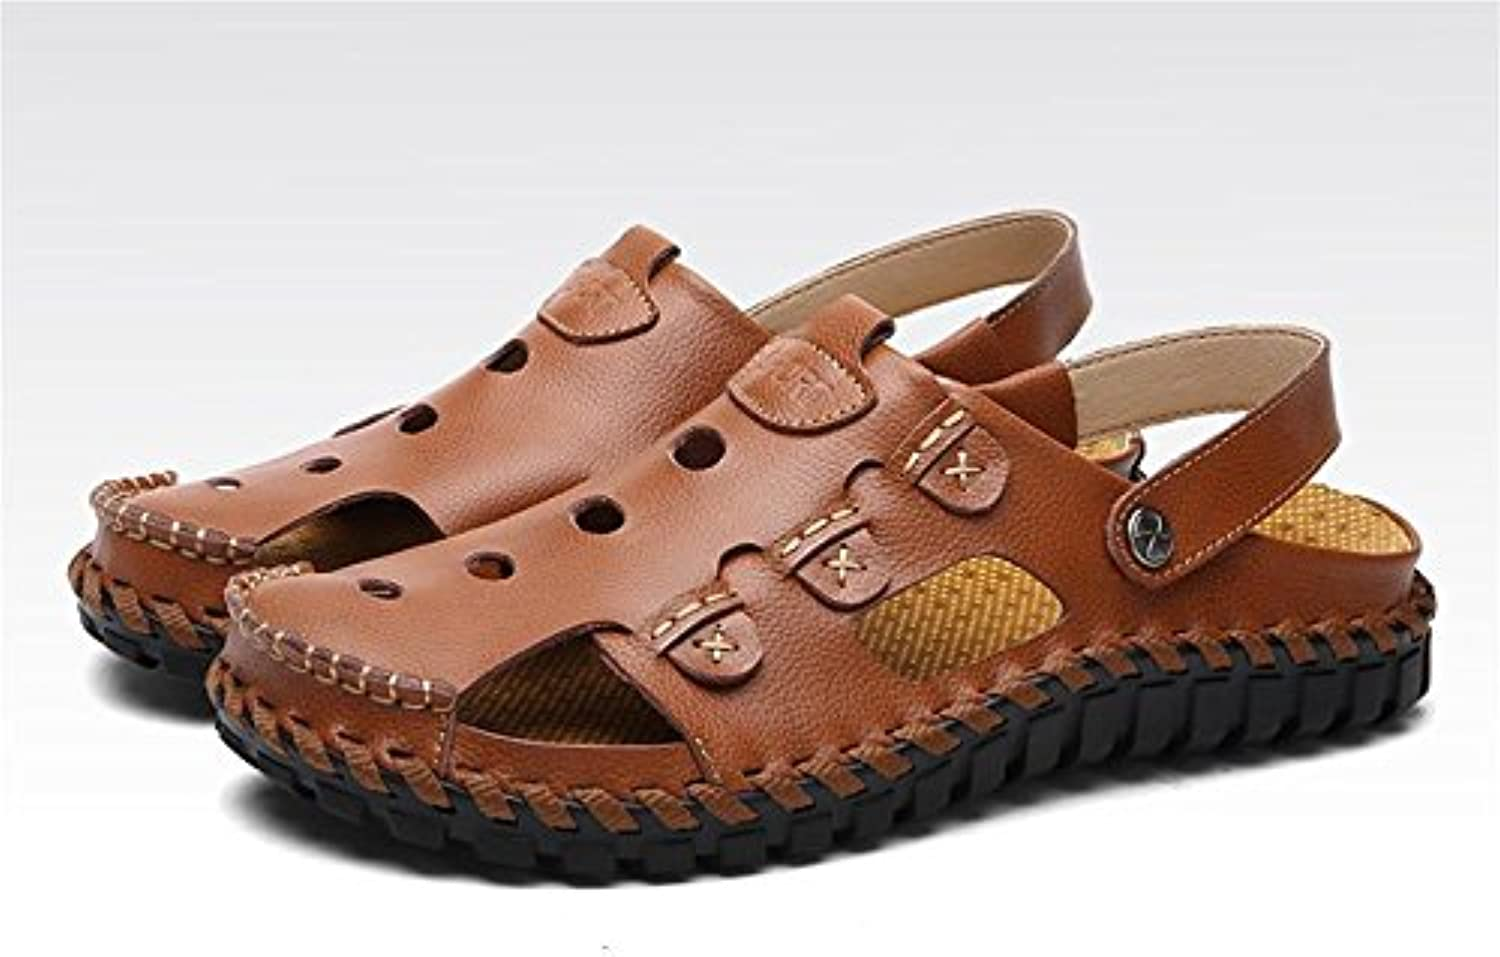 W&XY Men outdoor beach sandals leather open toe fisherman swimming pool sandals